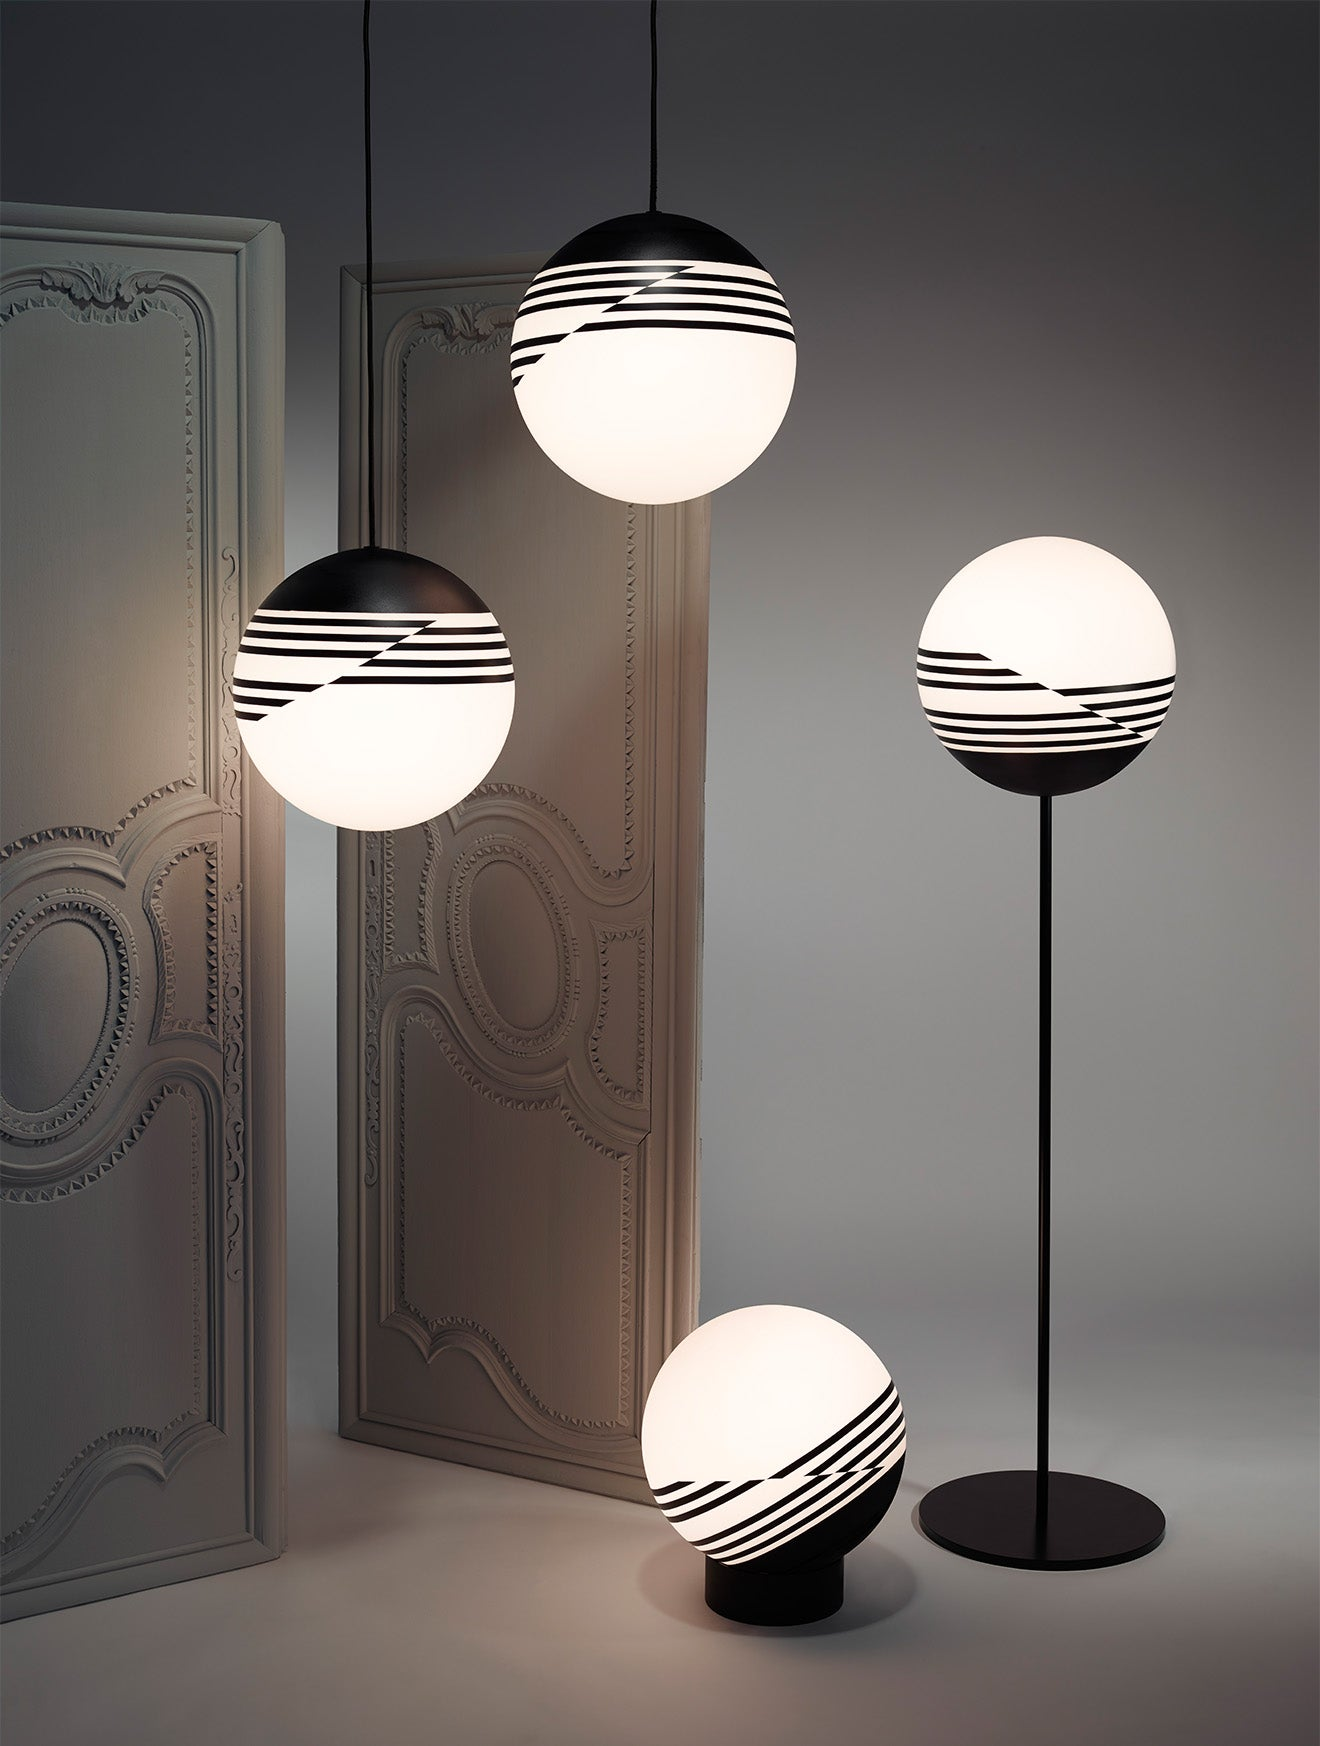 Lee Broom Optical collection Launched at Salone Milan black pattern and glass lighting designs